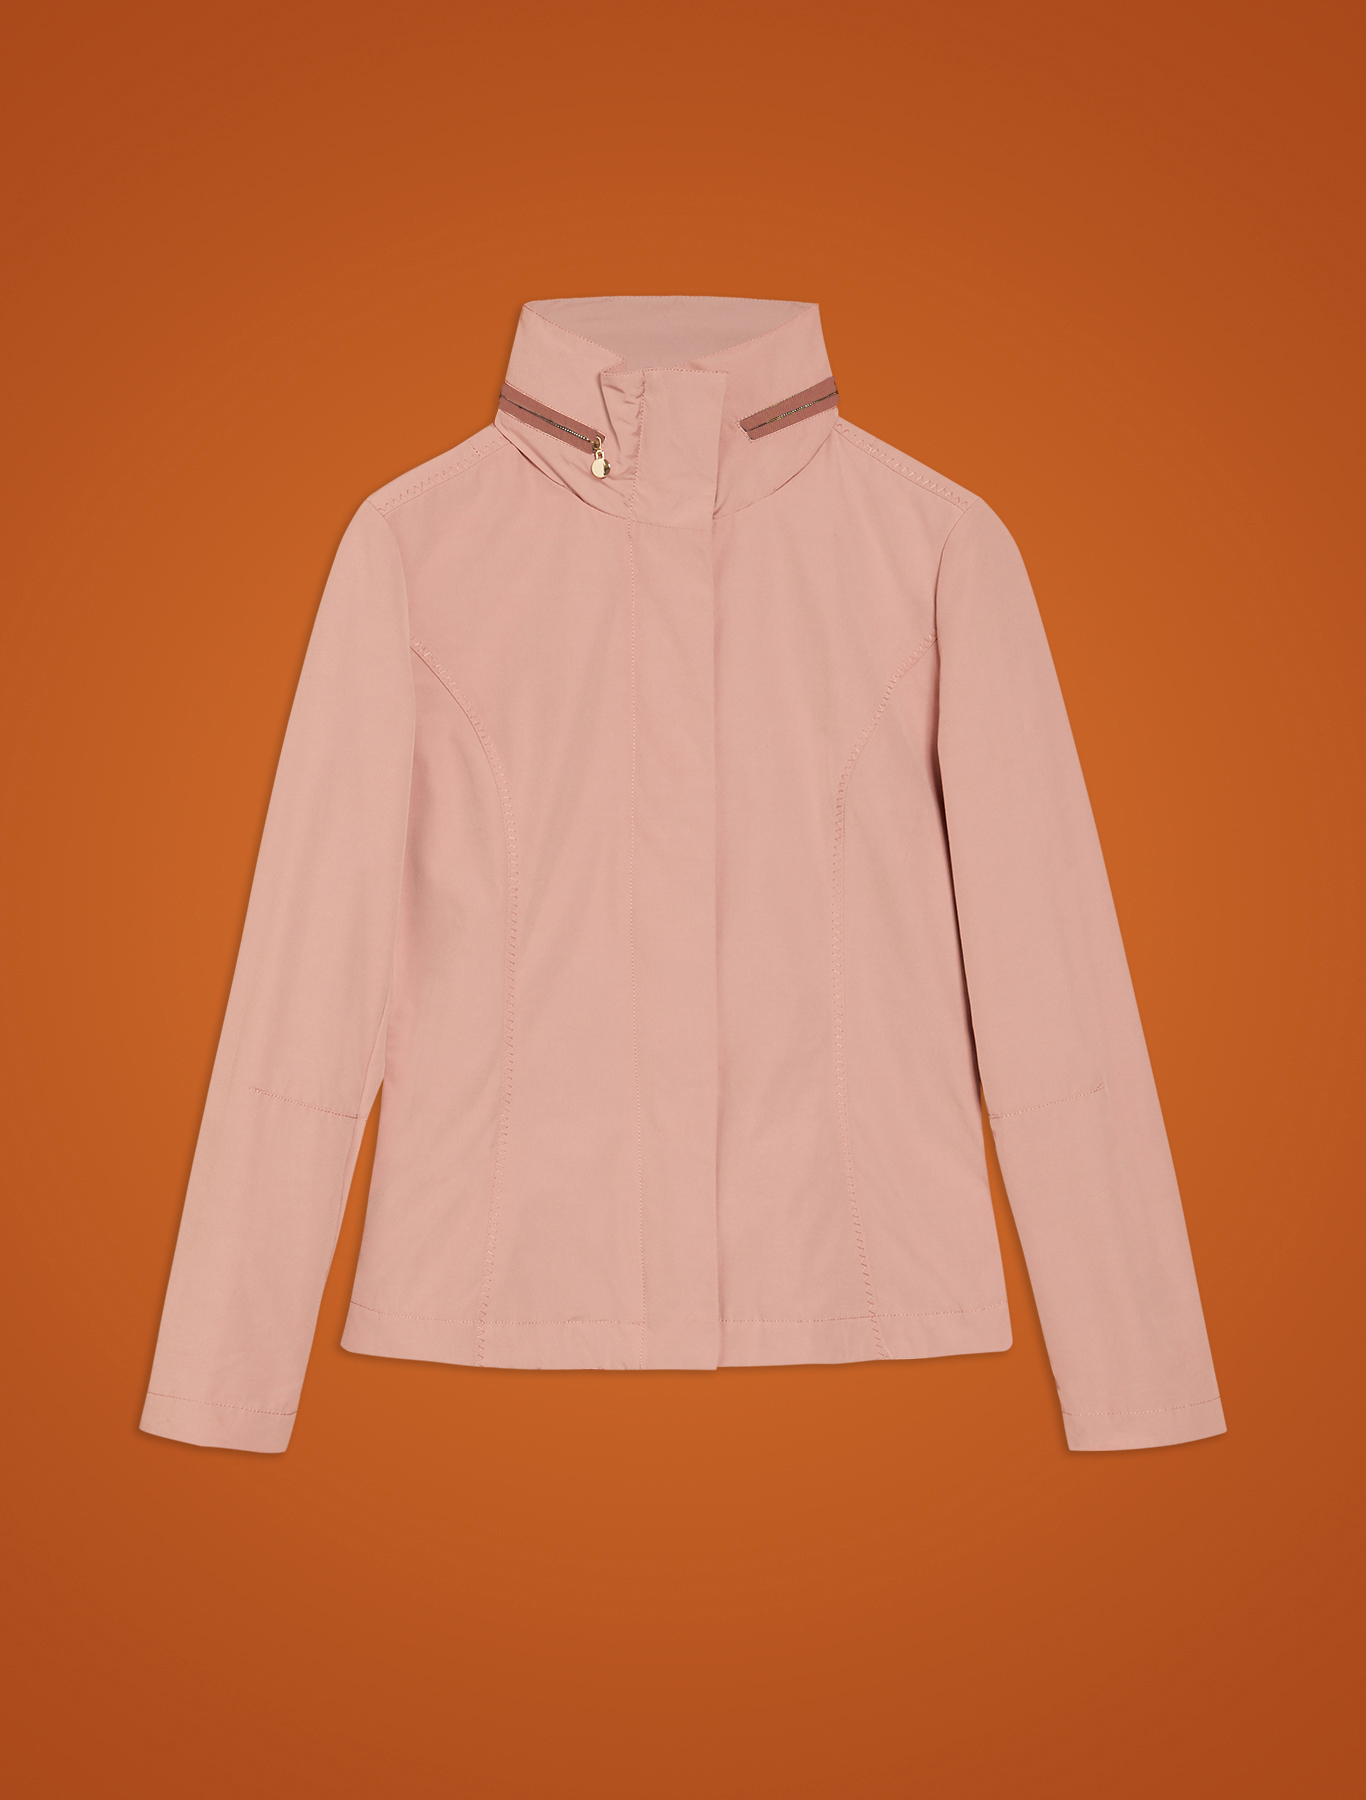 Slim jacket in technical cotton - pink - pennyblack